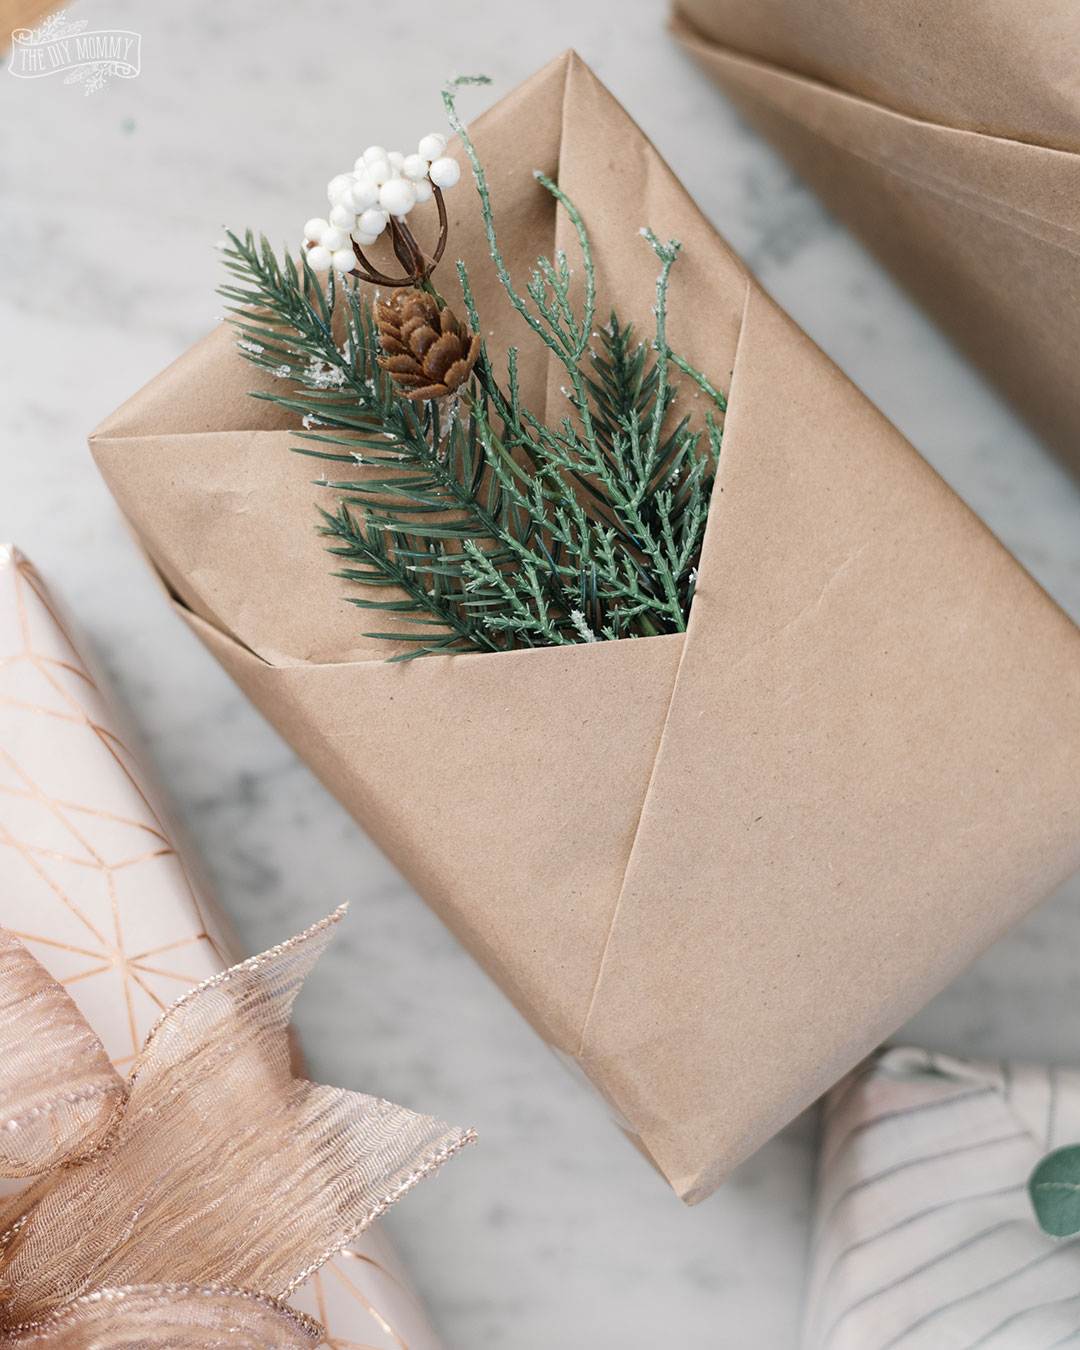 These beautiful gift wrap ideas are inexpensive and easy to recreate!